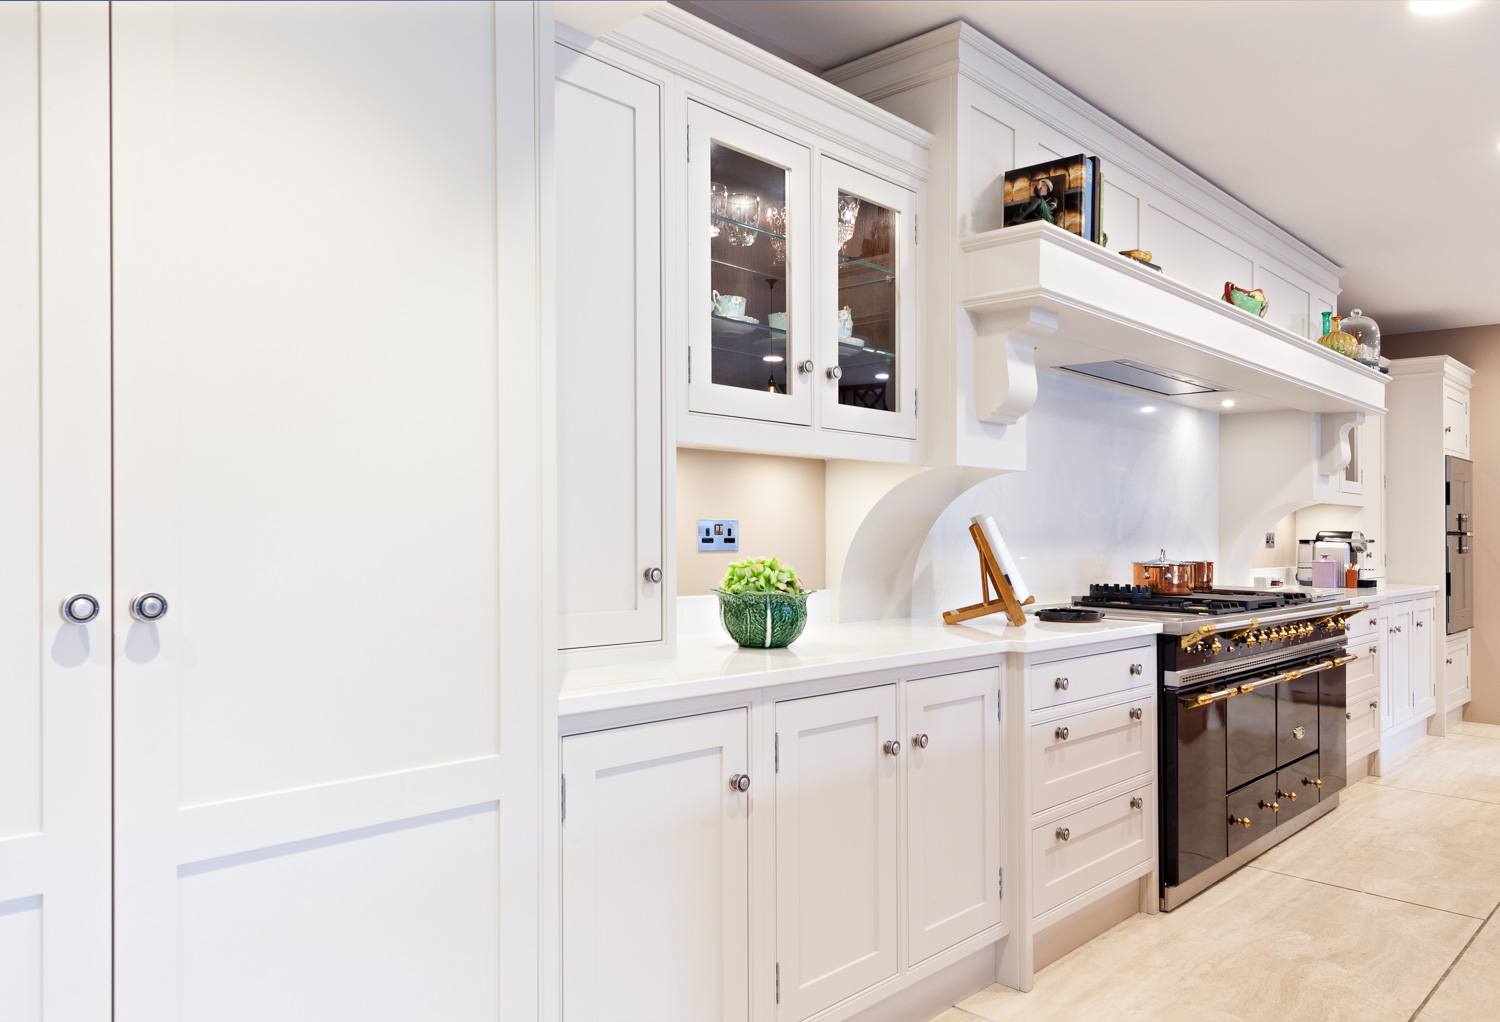 The back wall and main units of the central kitchen display at Nicholas Moody Kitchens